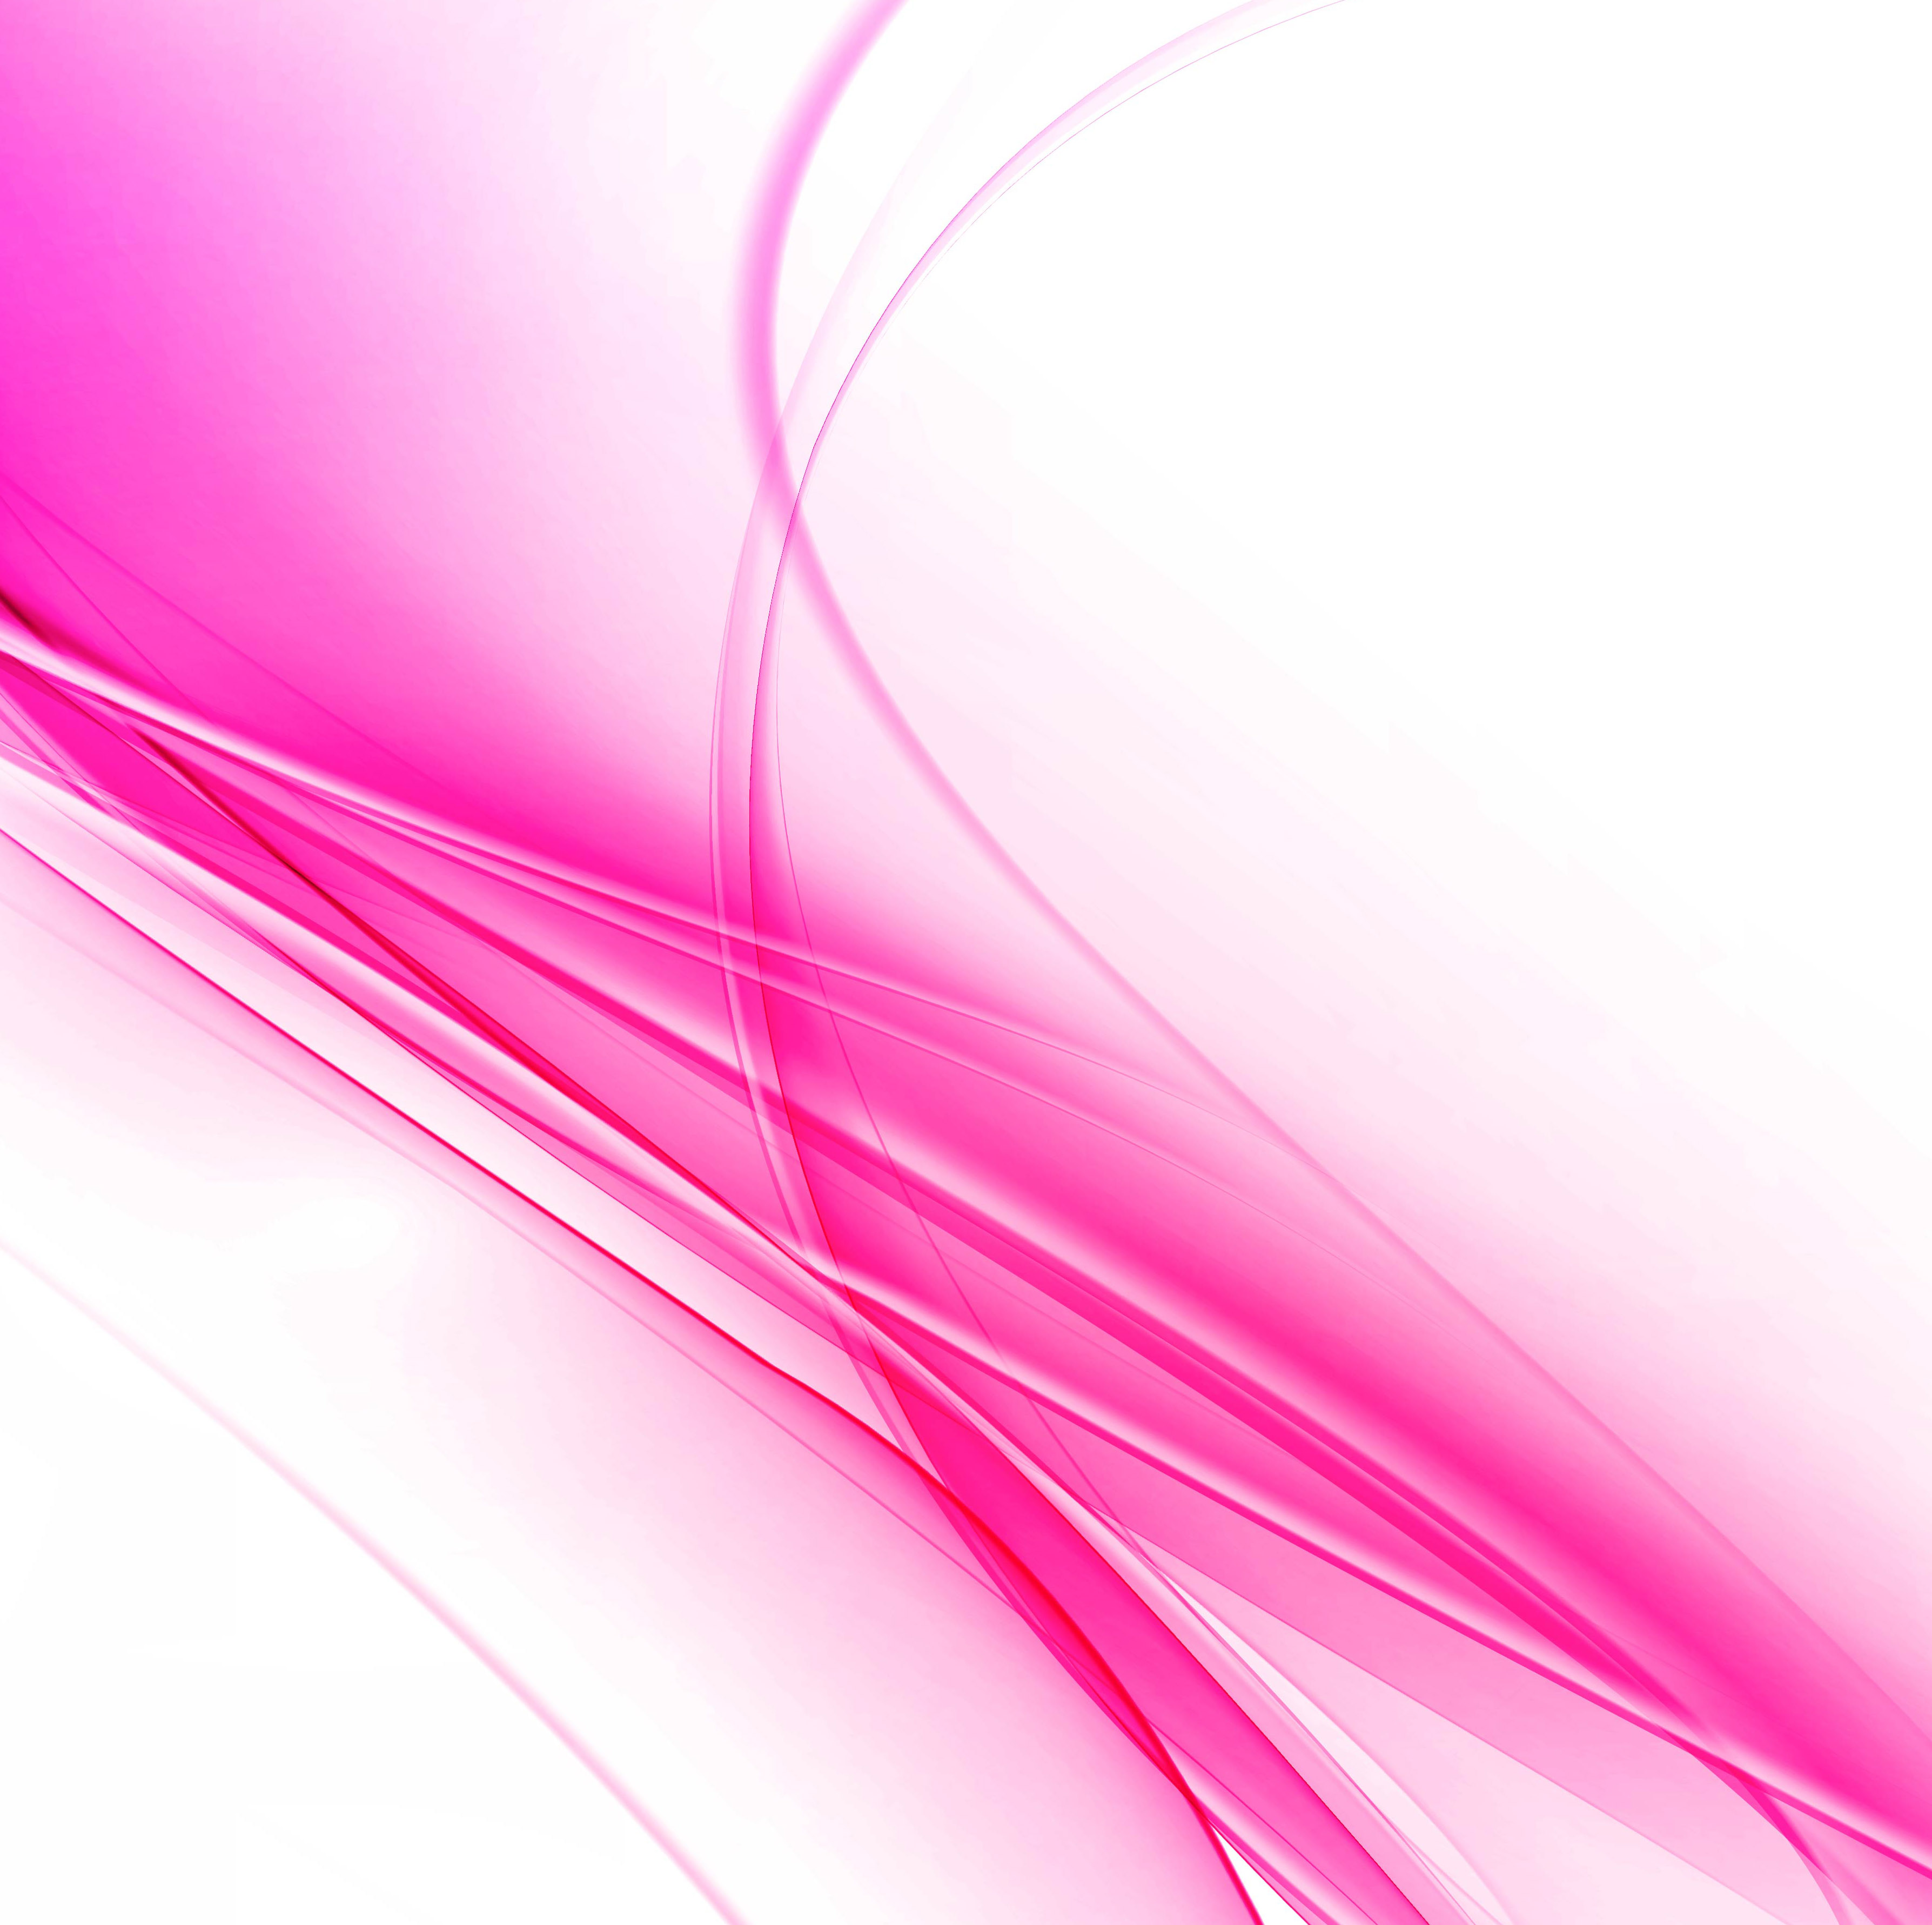 Abstract Colorful Pink Wave Background